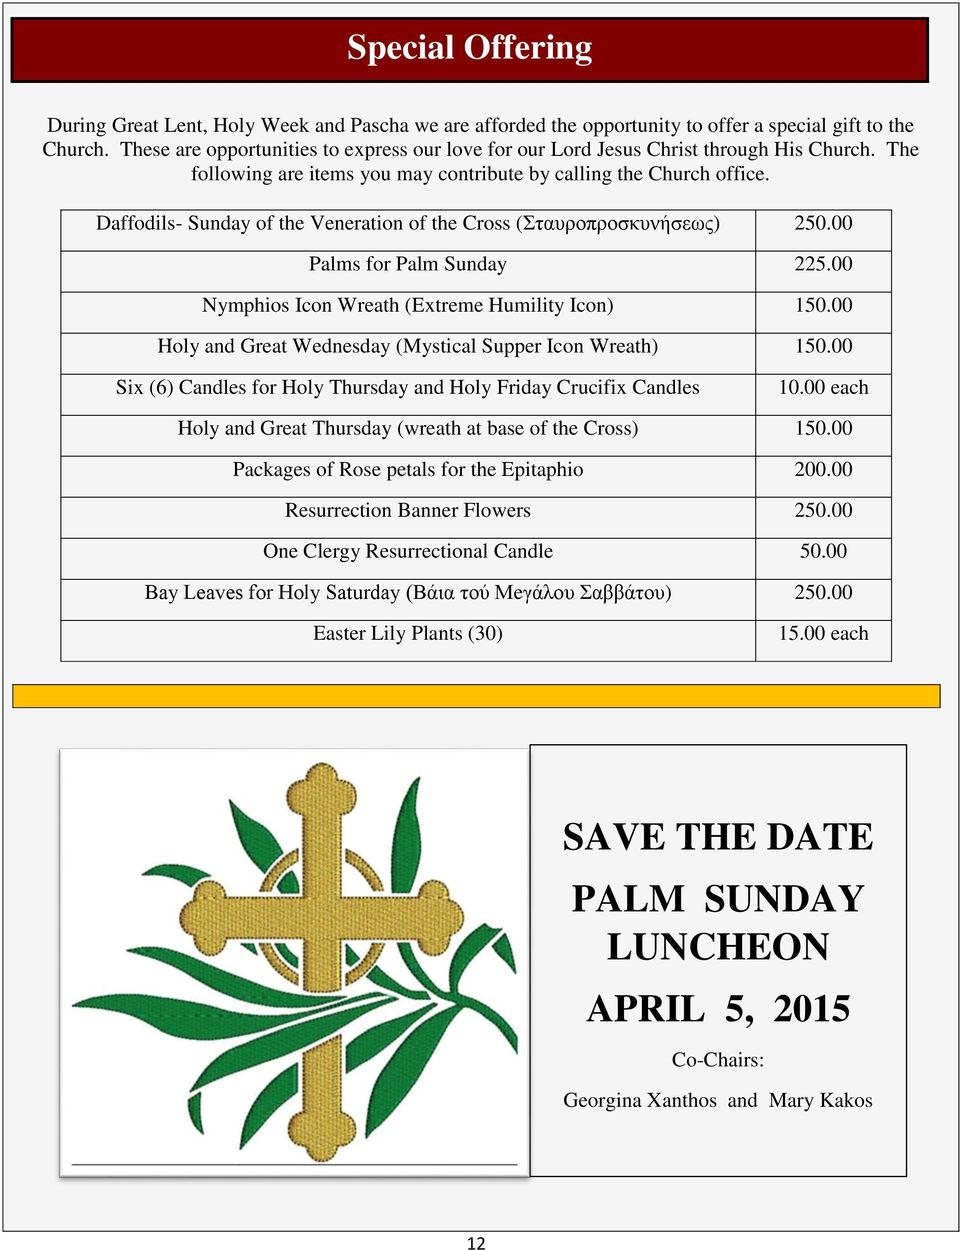 Daffodils- Sunday of the Veneration of the Cross (Σταυροπροσκυνήσεως) 250.00 Palms for Palm Sunday 225.00 Nymphios Icon Wreath (Extreme Humility Icon) 150.